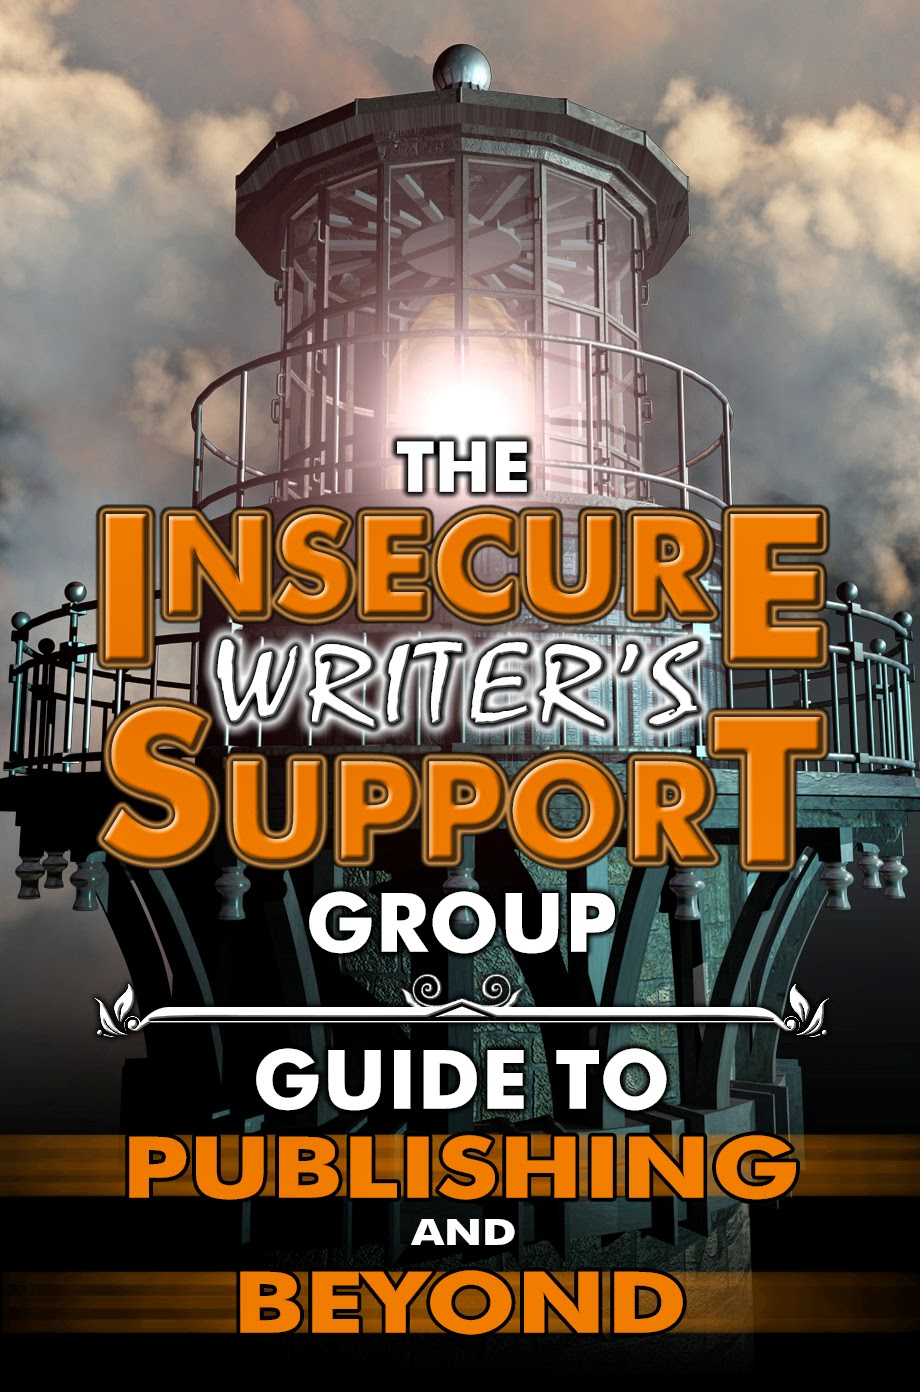 IWSG Guide to Publishing & Beyond